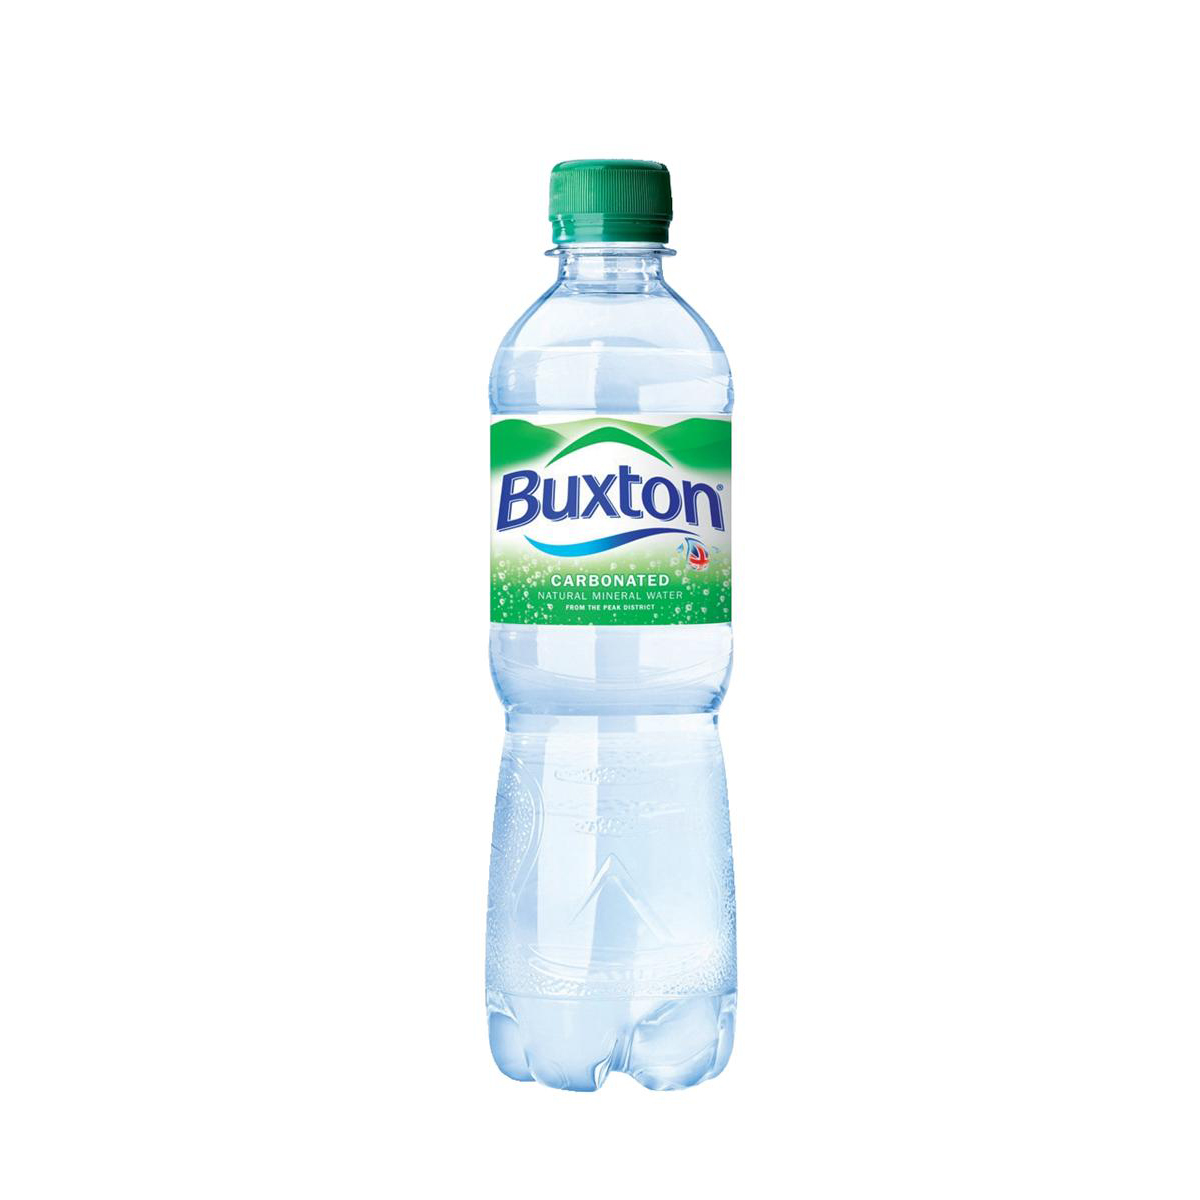 Buxton Natural Mineral Water Sparkling Bottle Plastic 500ml Ref 742895 Pack 24